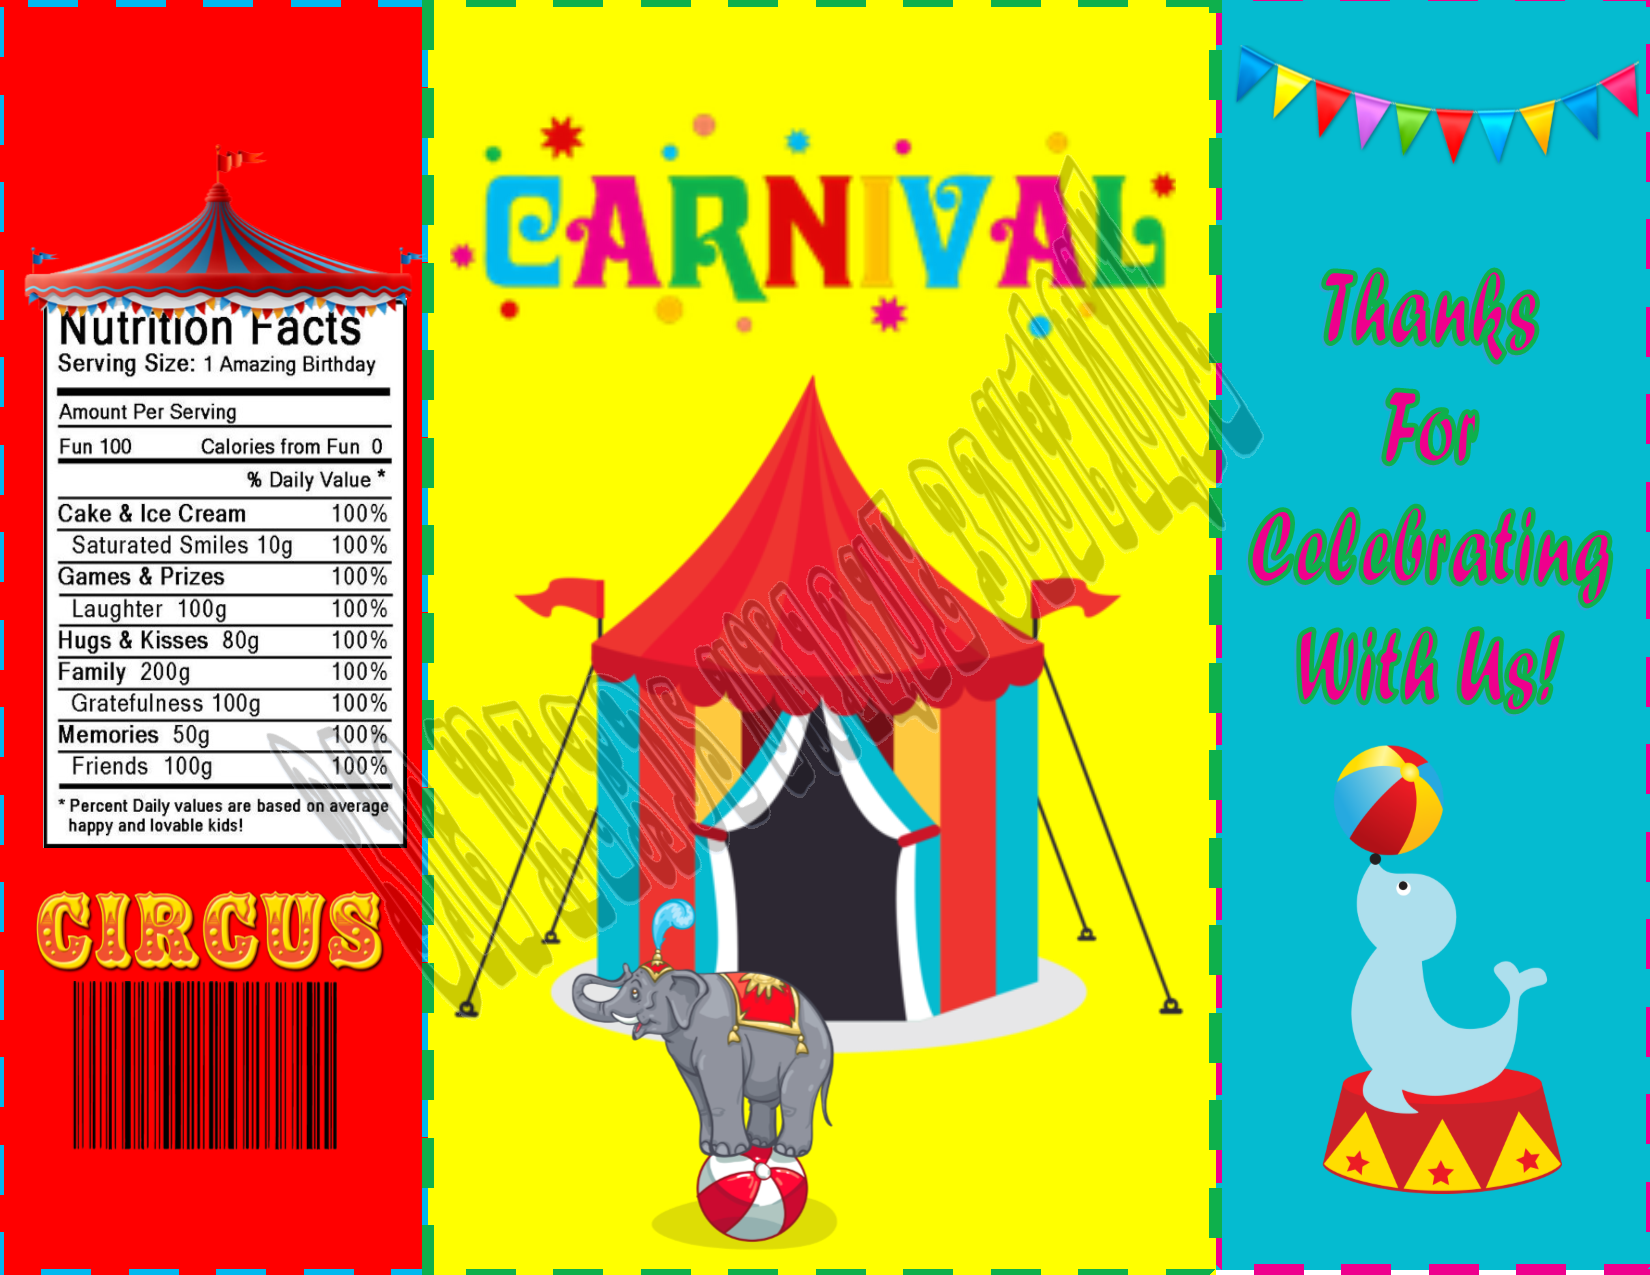 picture about Printable Chip Bags named Carnival Birthday Chip Quick Obtain